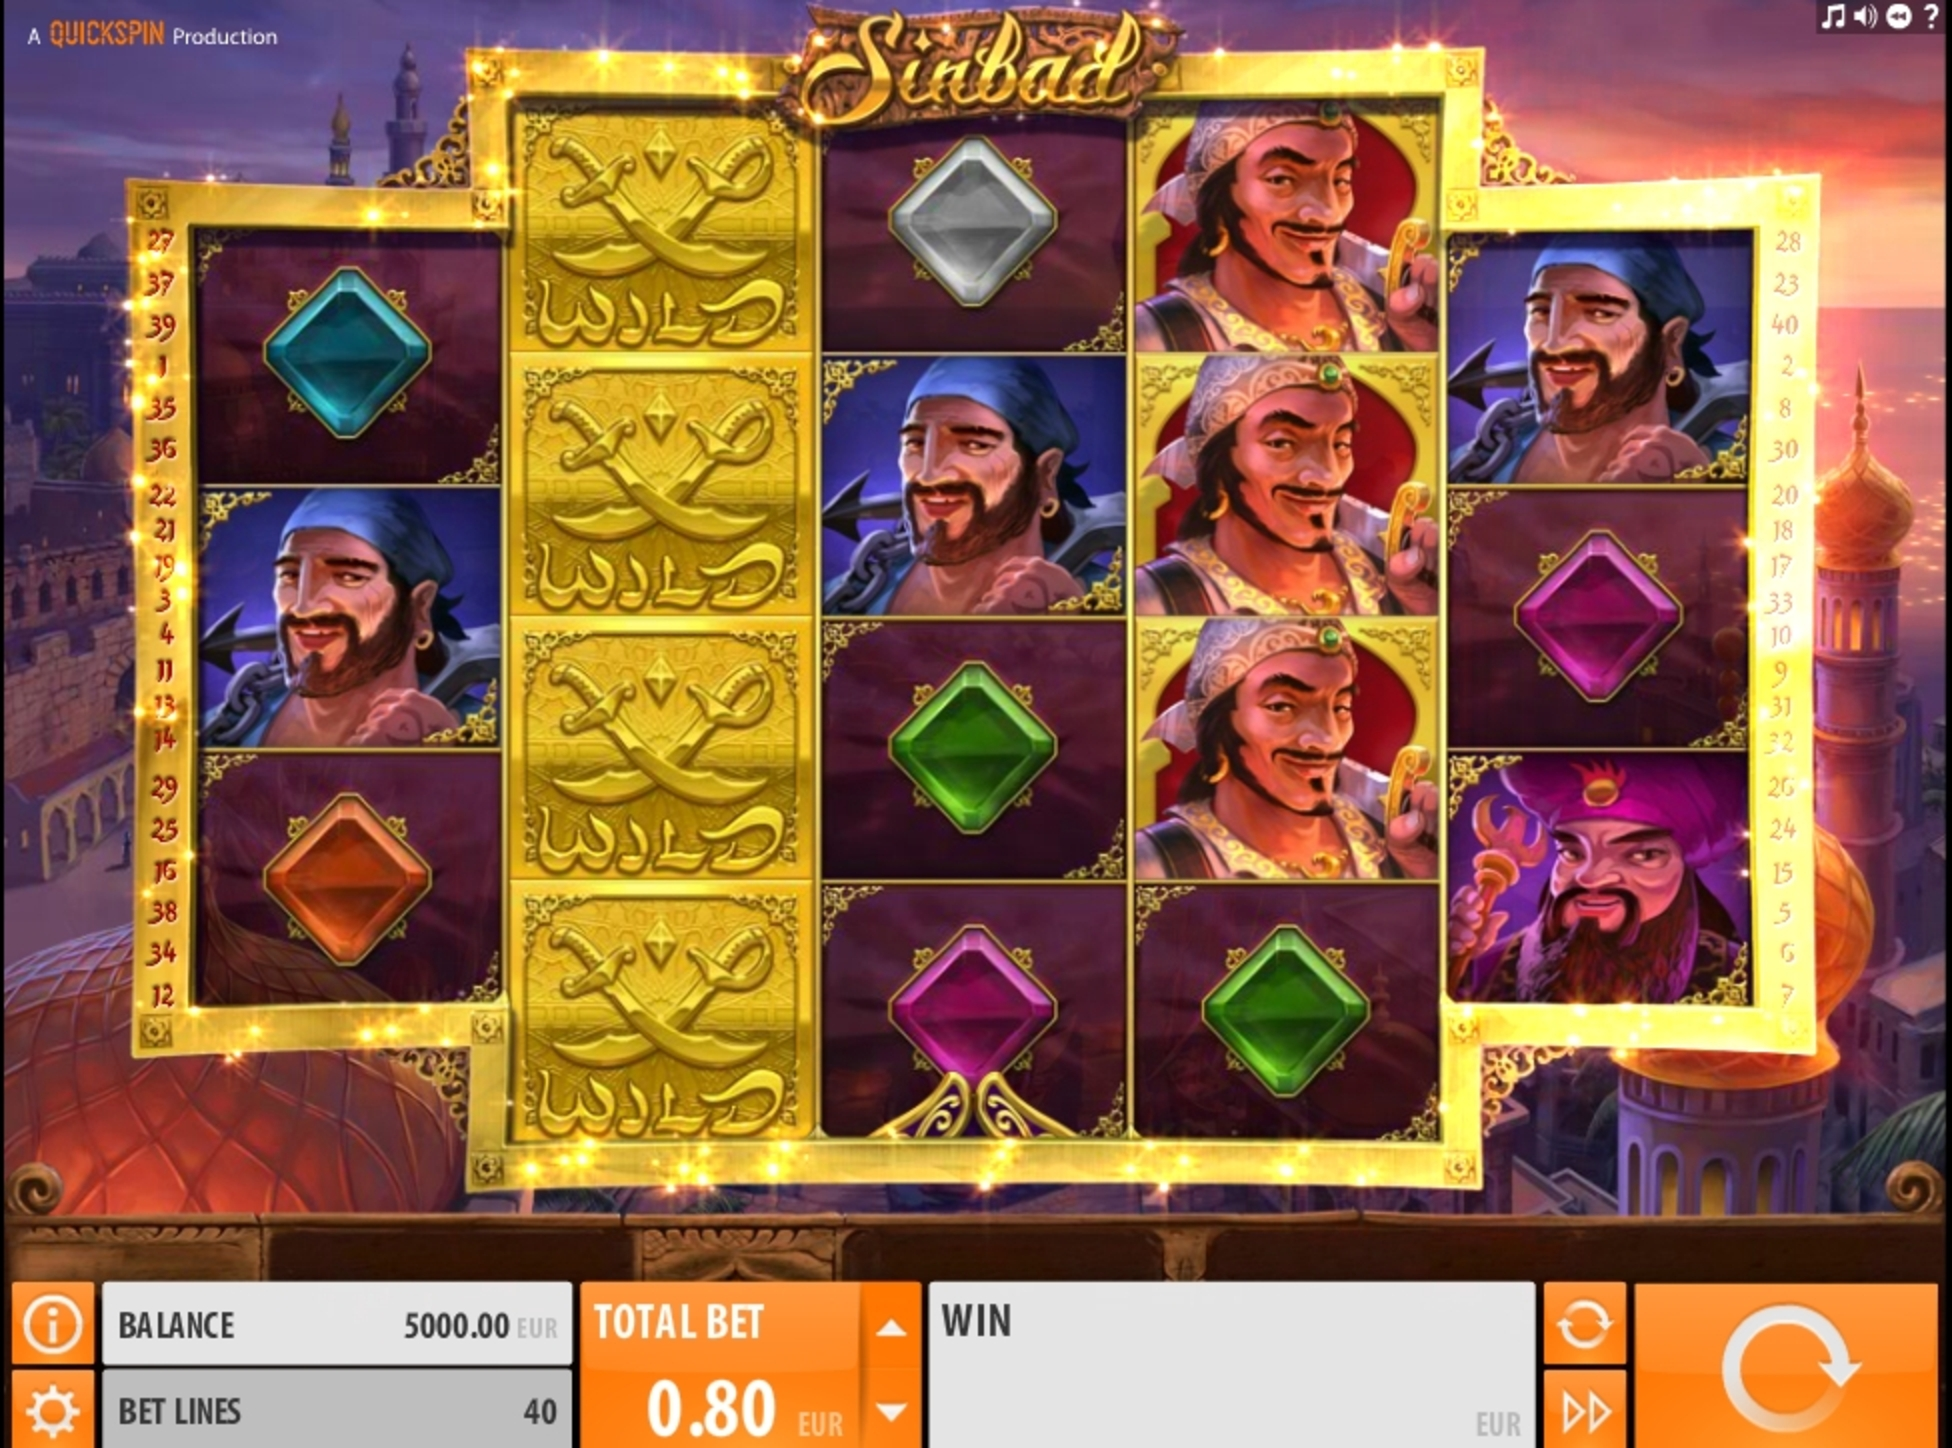 Reels in Sinbad (Quickspin) Slot Game by Quickspin